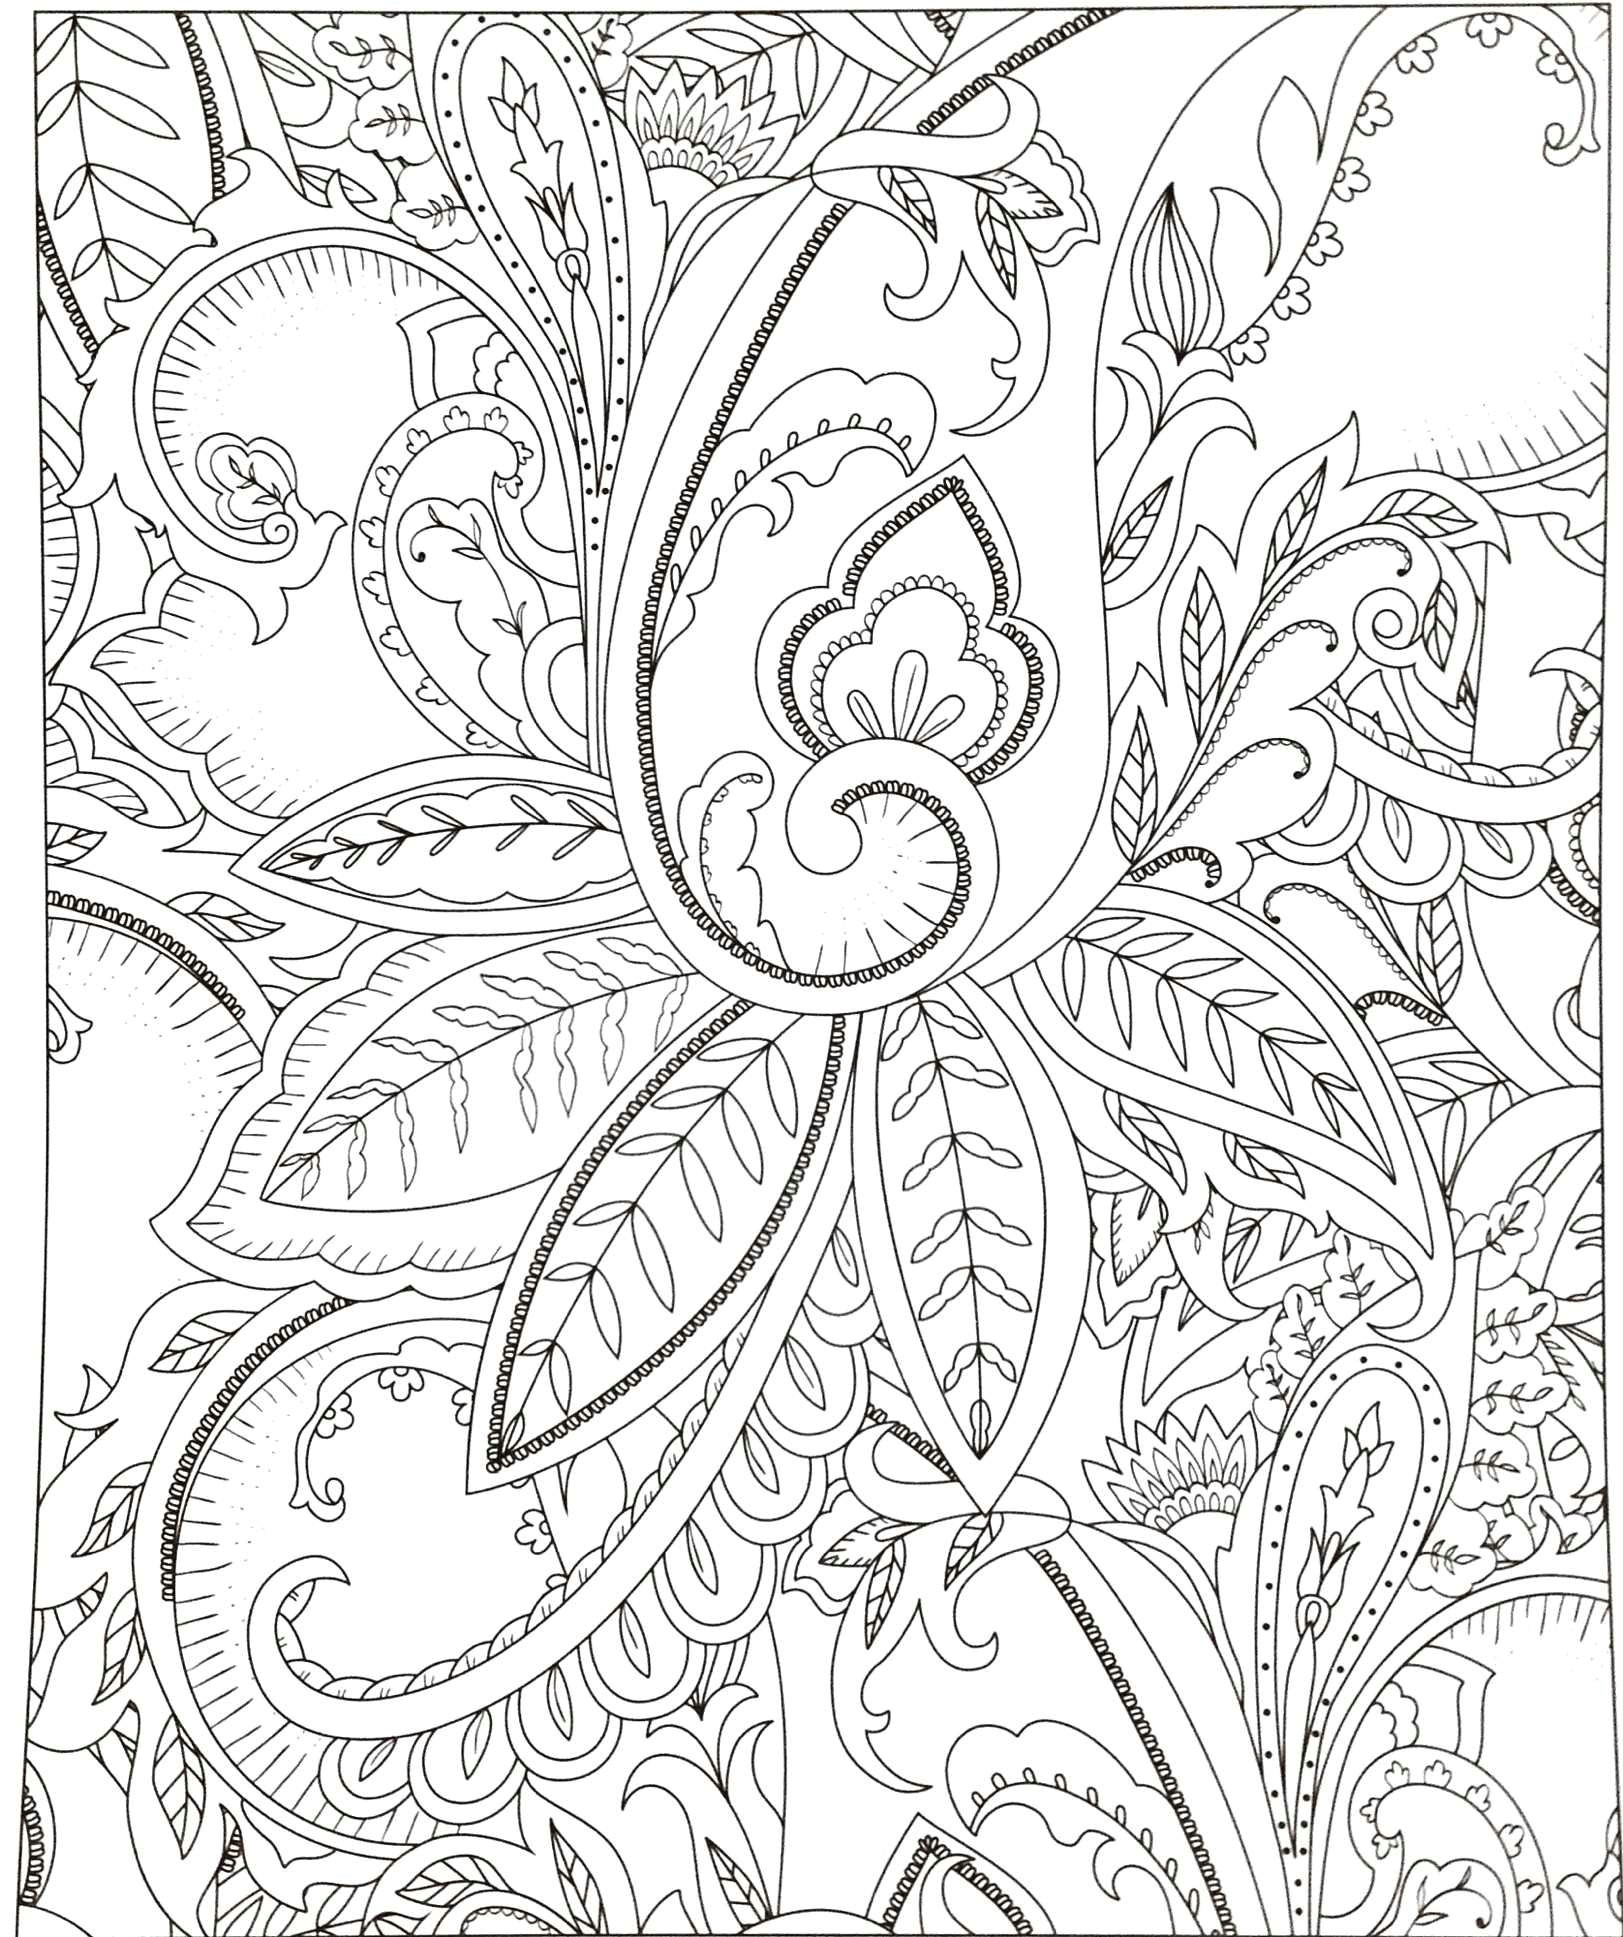 Flowers Drawing Easy with Color Easy to Draw Instruments Home Coloring Pages Best Color Sheet 0d